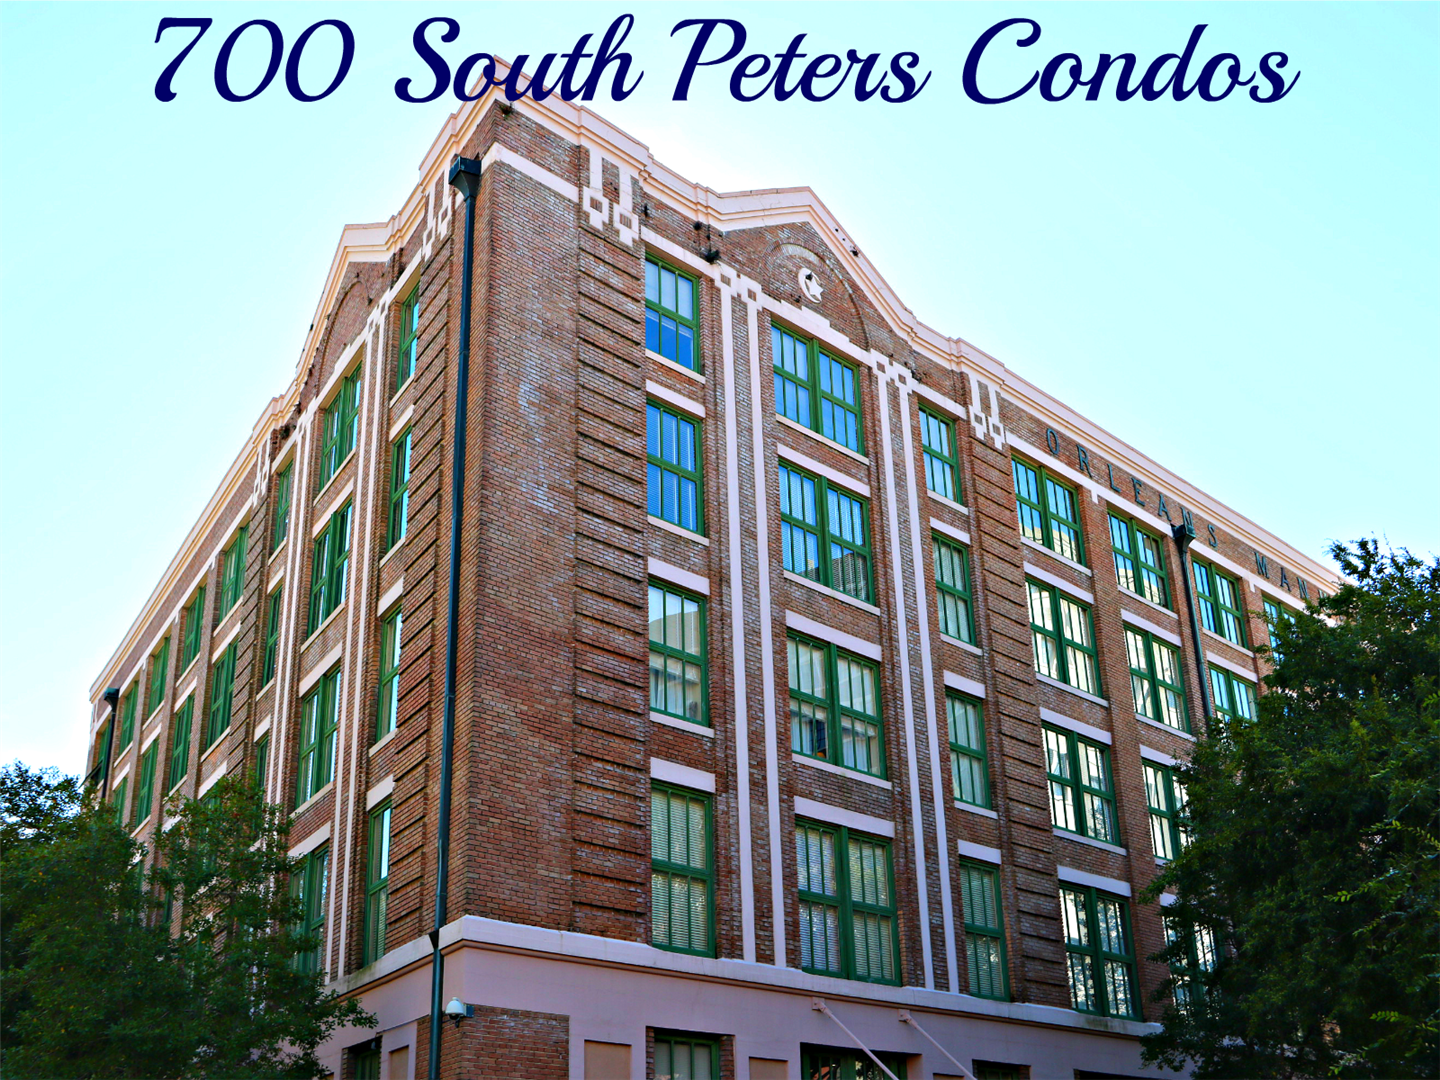 700SouthPetersCondos1.png